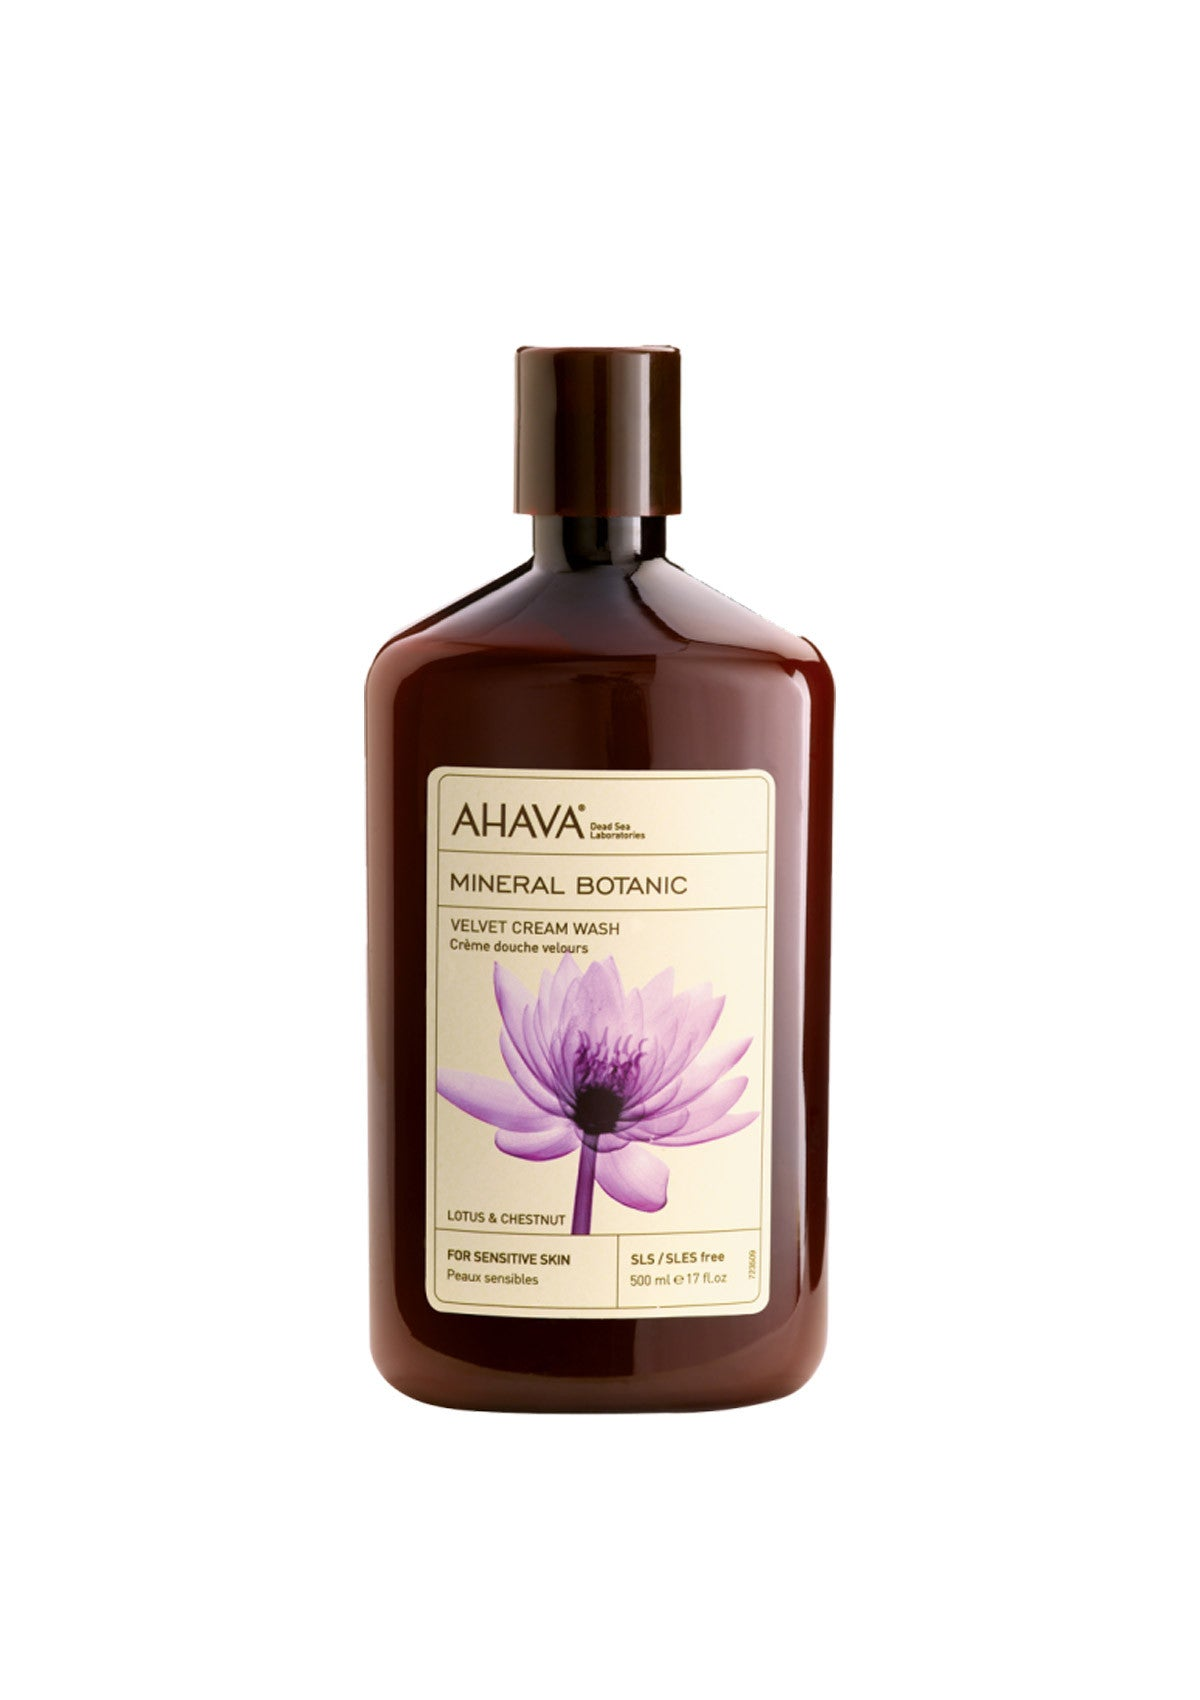 AHAVA - Mineral Botanic Cream Wash - Lotus & Chestnut - DeadSeaShop.co.uk